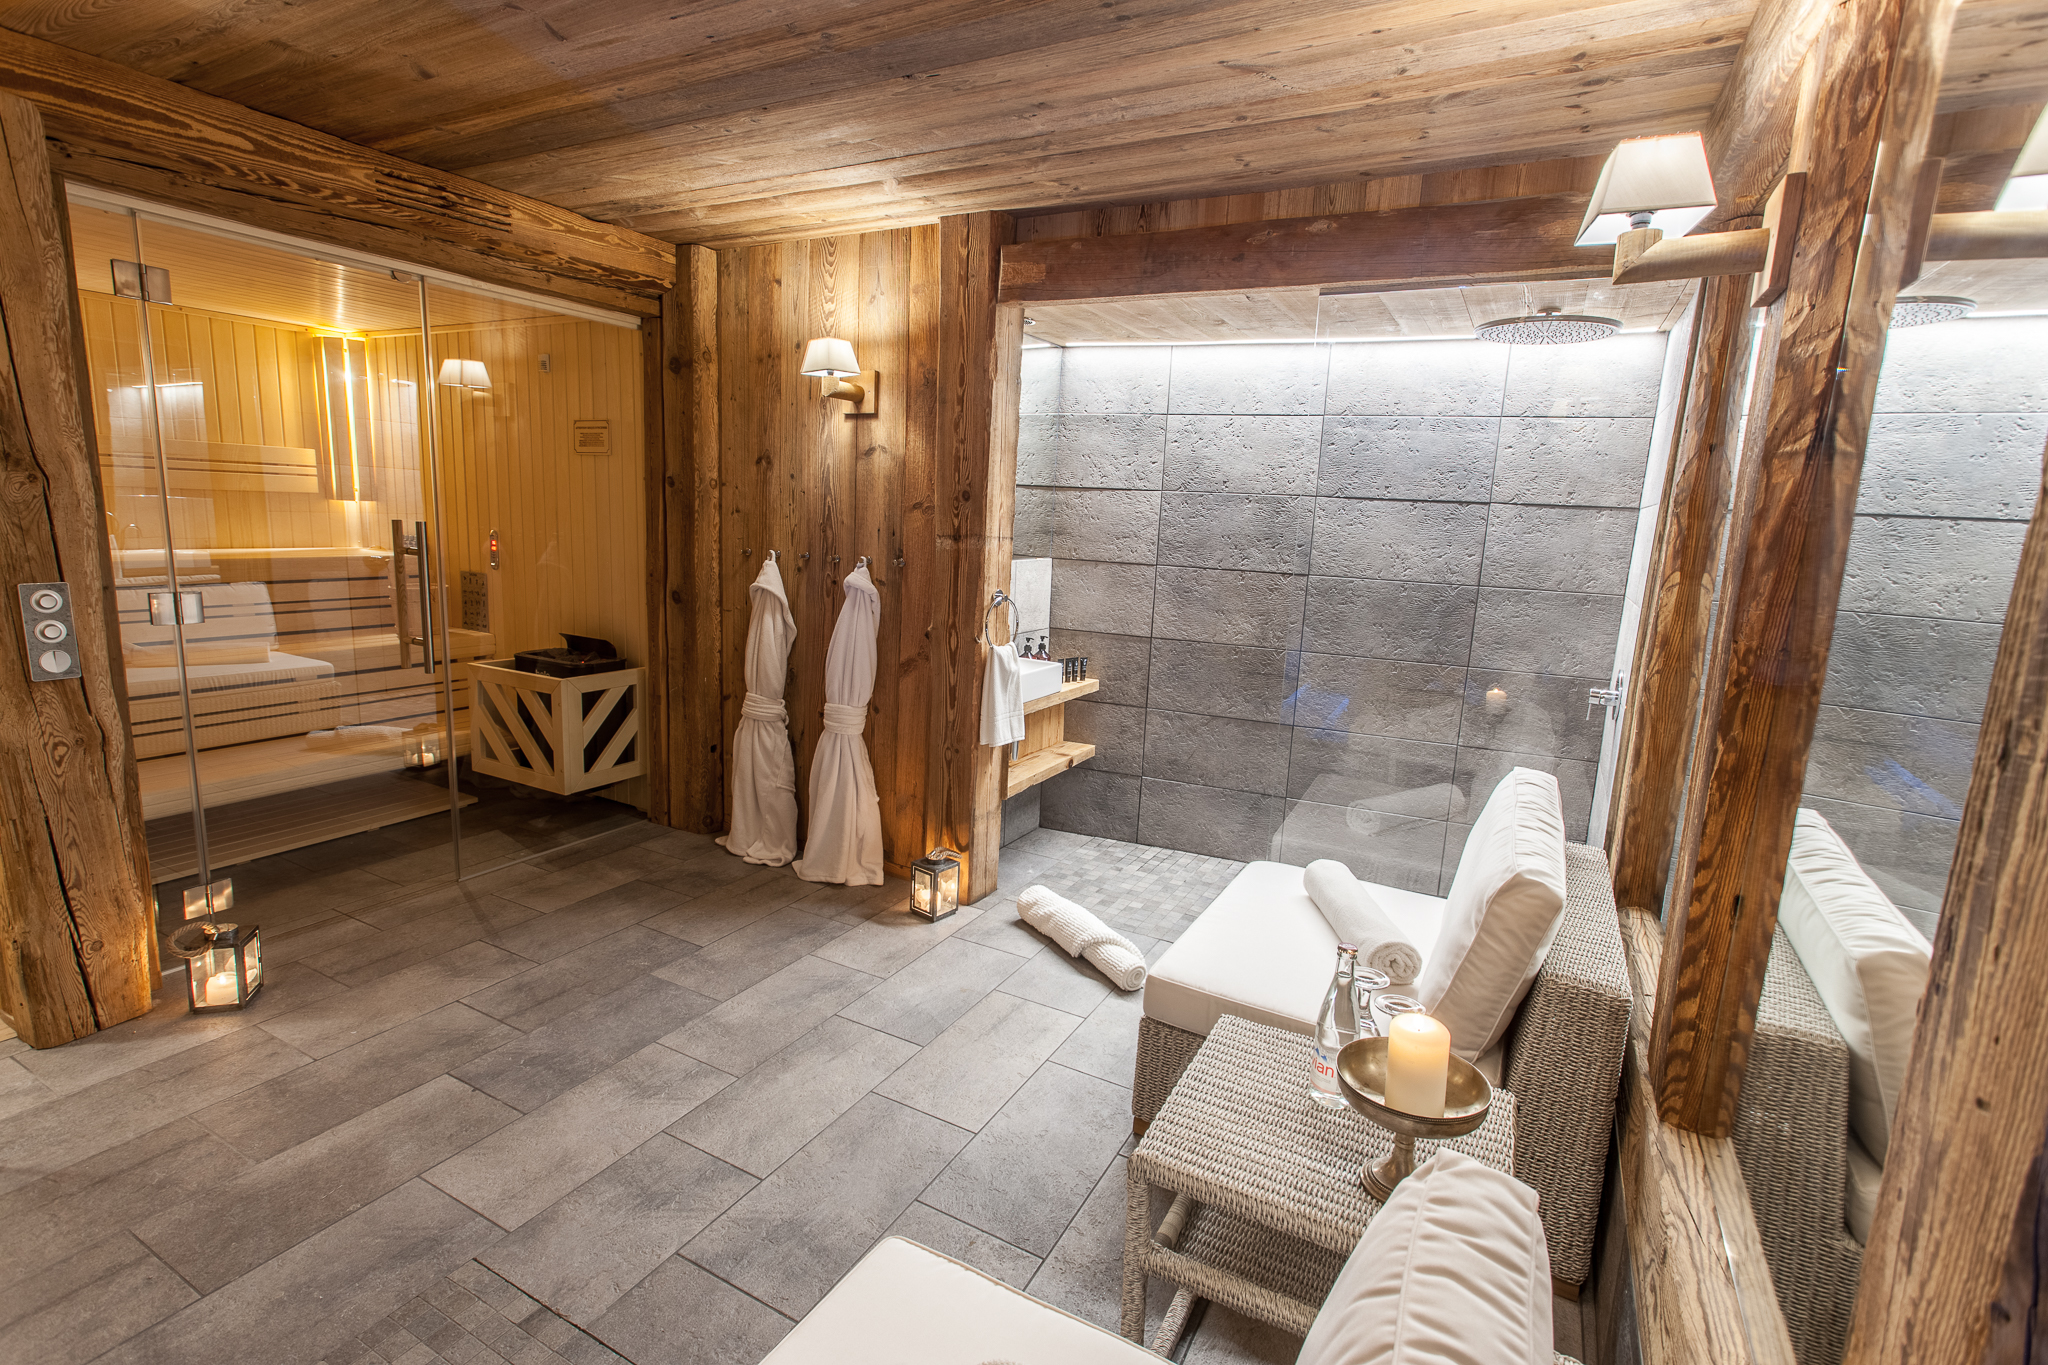 CHALET ARTIC TOWNHOUSE- VAL D'ISERE- FRANCE- VOYAGER CLUB